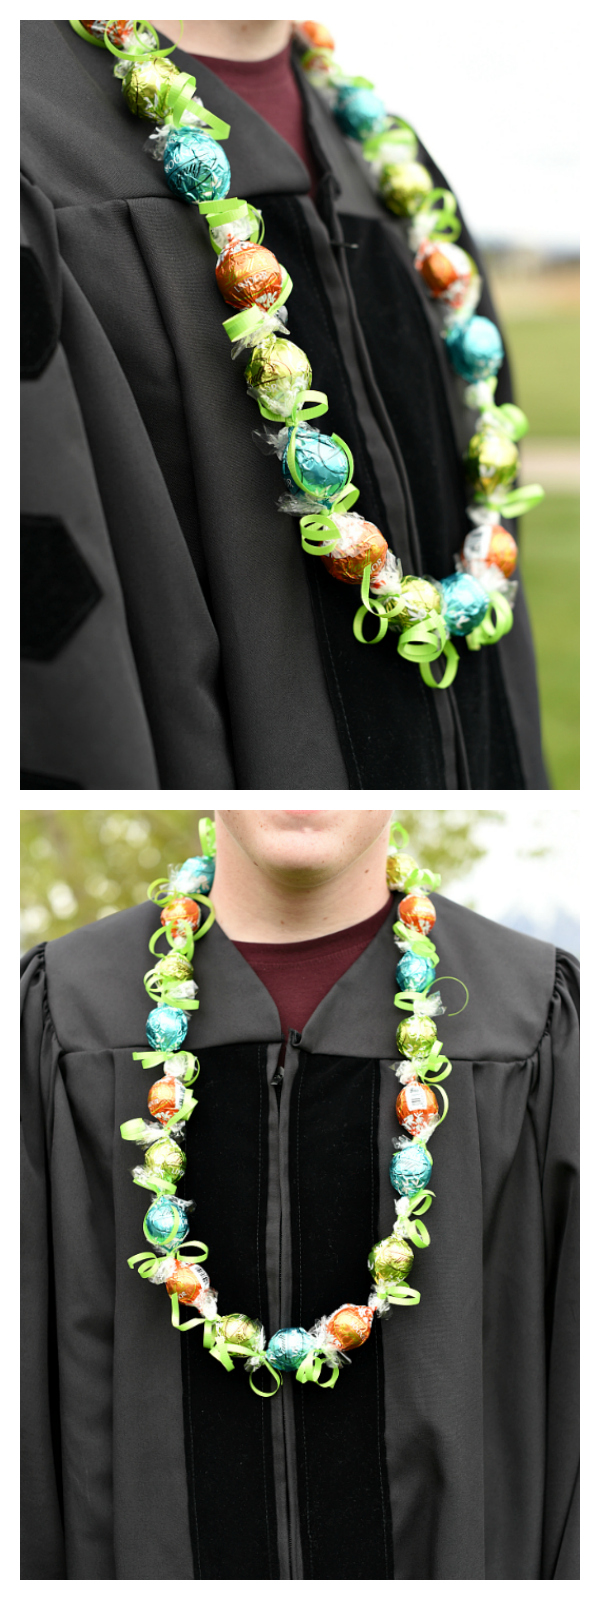 Chocolate Graduation Candy Leis-How to Make a Candy Lei from Lindt Truffles